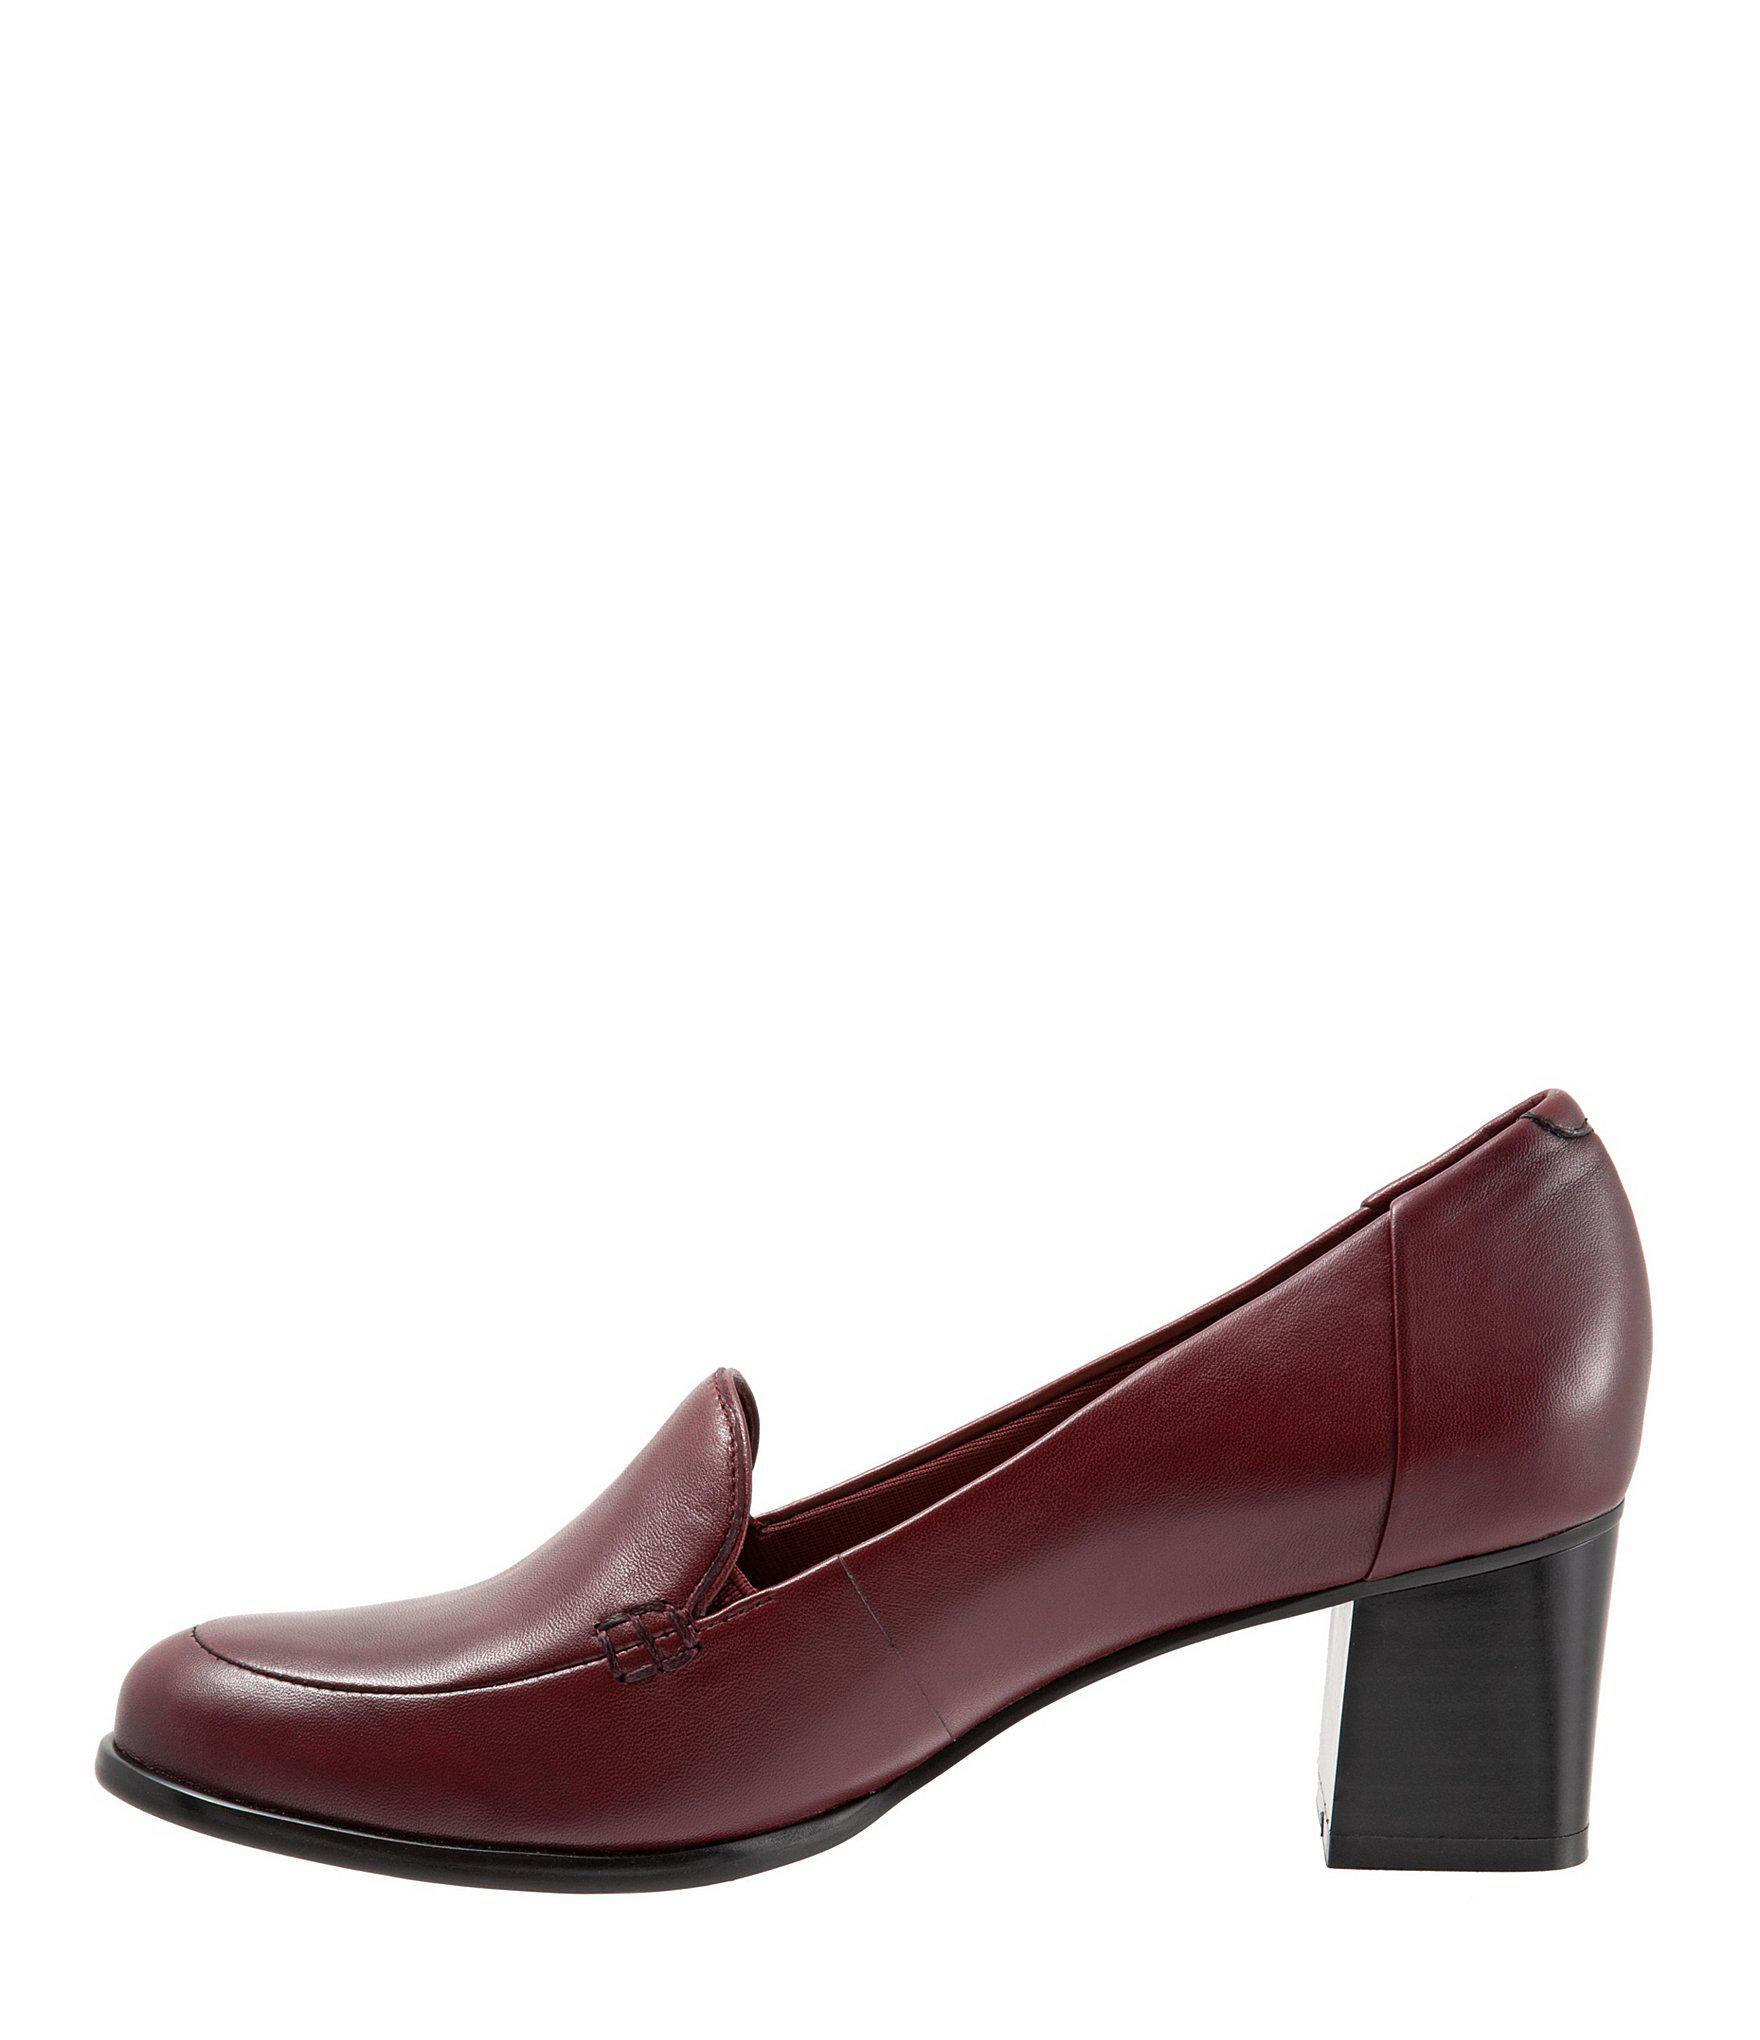 4e415de8a2 Trotters - Red Quincy Leather Loafer Pumps - Lyst. View fullscreen